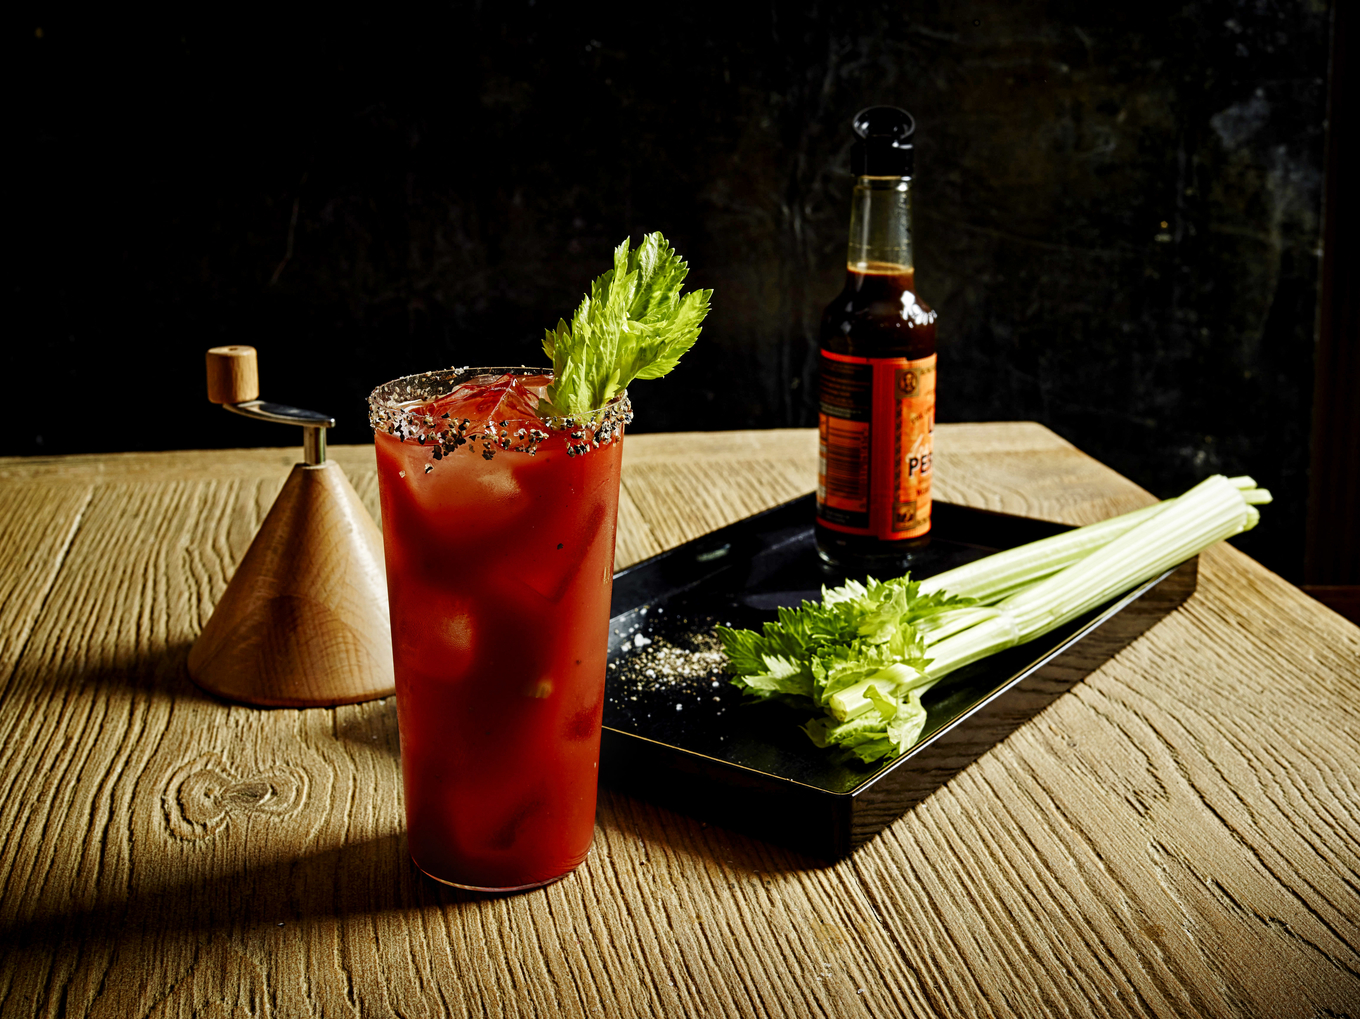 Bloody Mary Recipes by Ketel One Vodka image 1